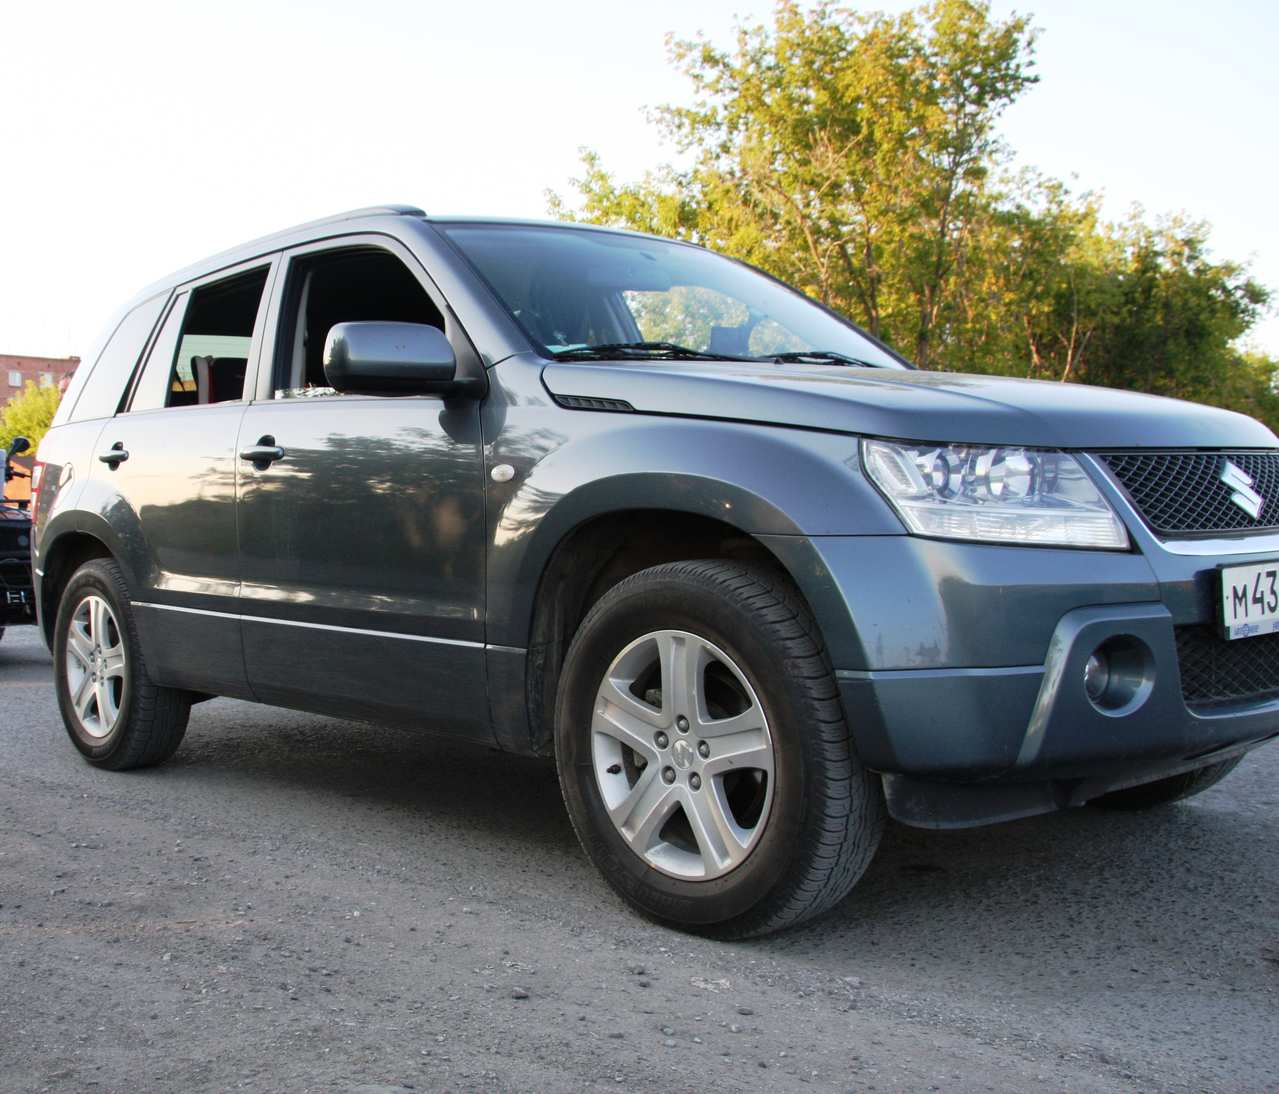 2007 suzuki grand vitara pictures 2000cc gasoline automatic for sale. Black Bedroom Furniture Sets. Home Design Ideas